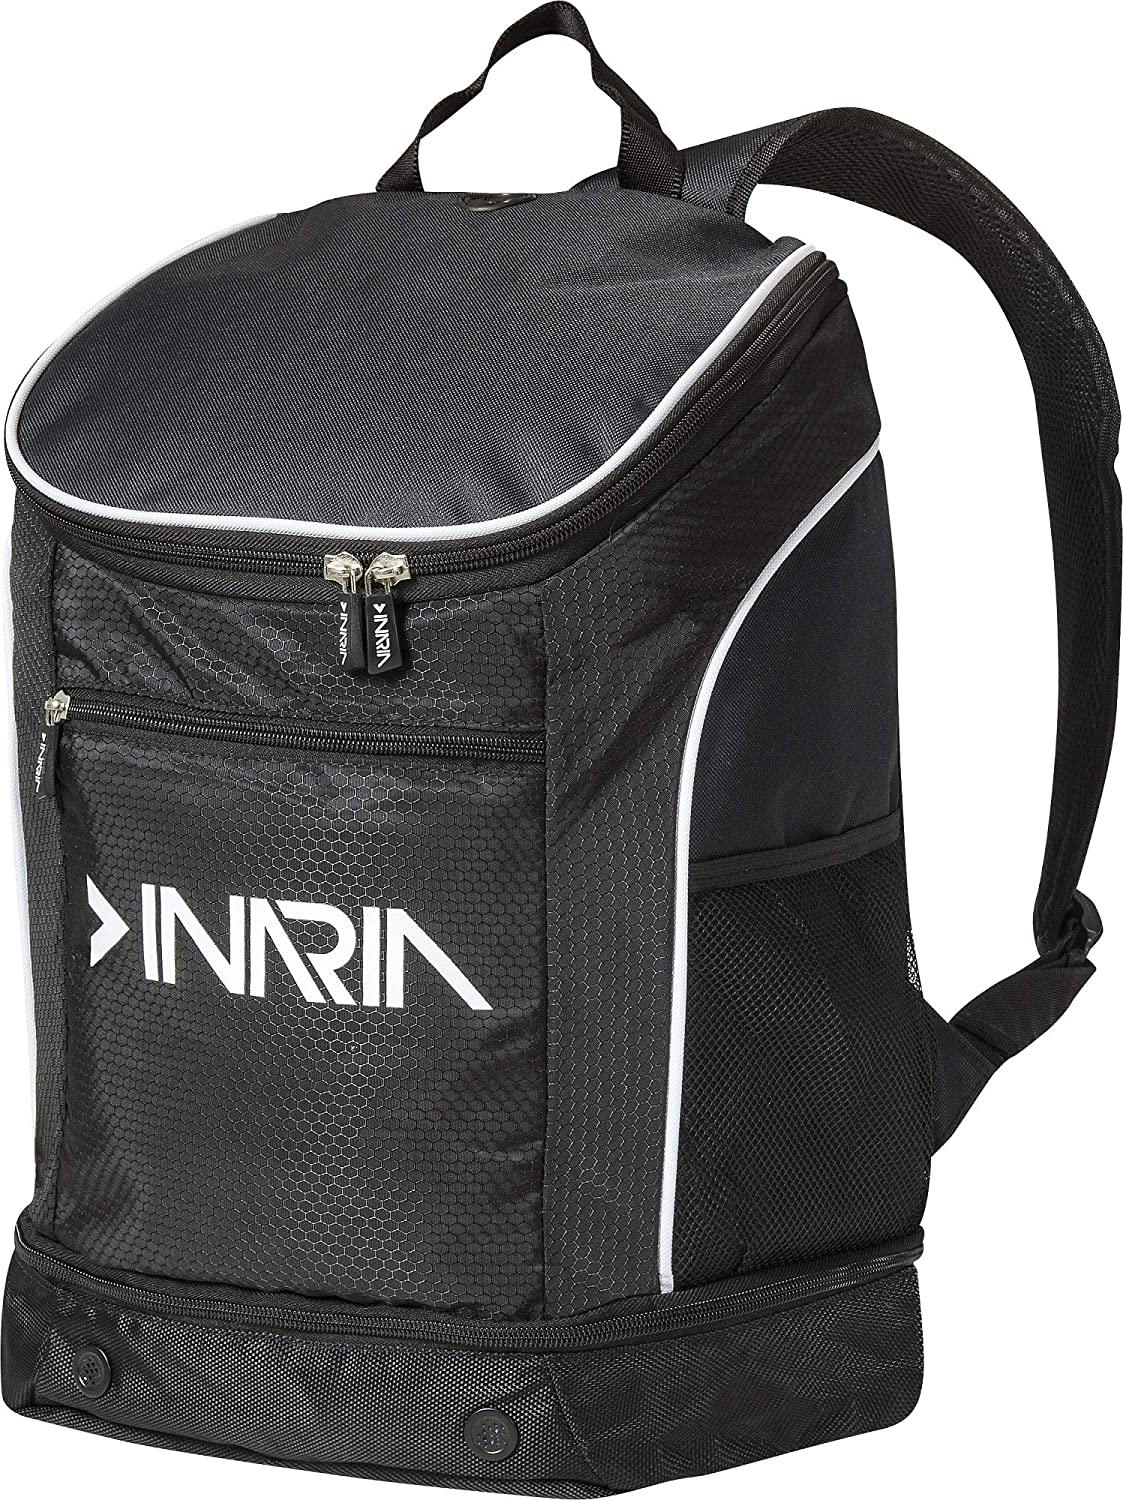 Inaria Stadio Soccer Sport Backpack Also Basketball Lacrosse School Fitness and Travel